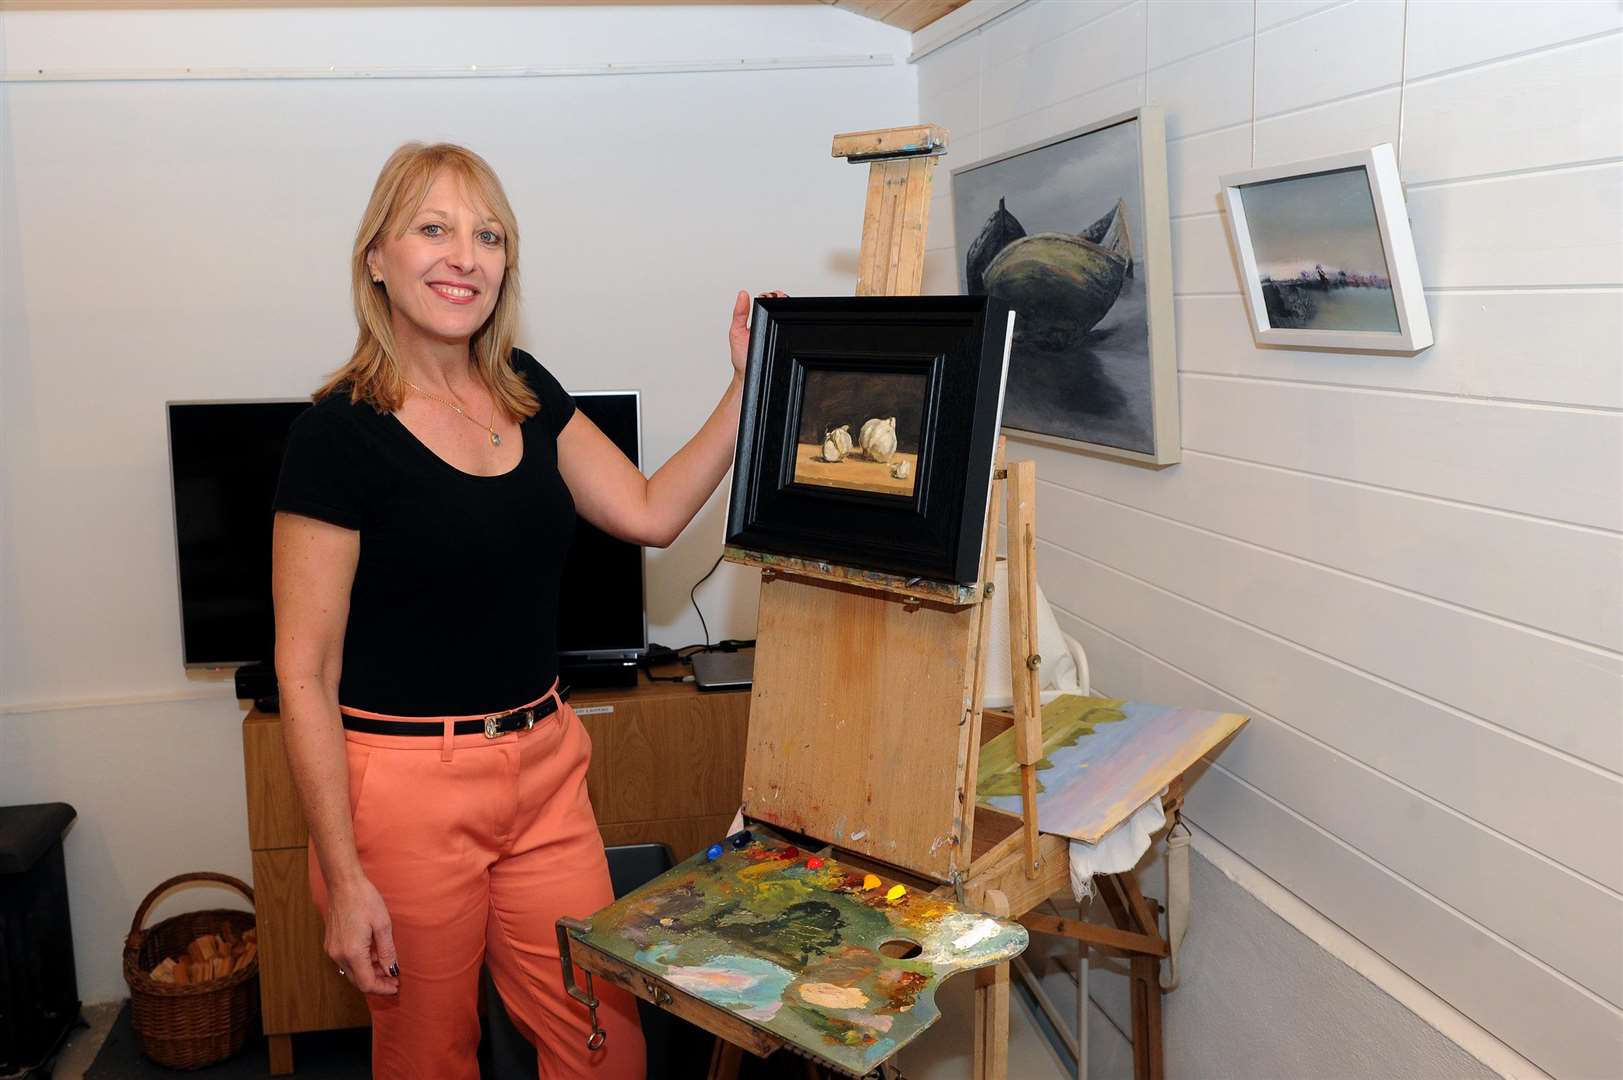 Sue Ecclestone has opened a studio to run art classes for the public.PICTURE: Mecha Morton